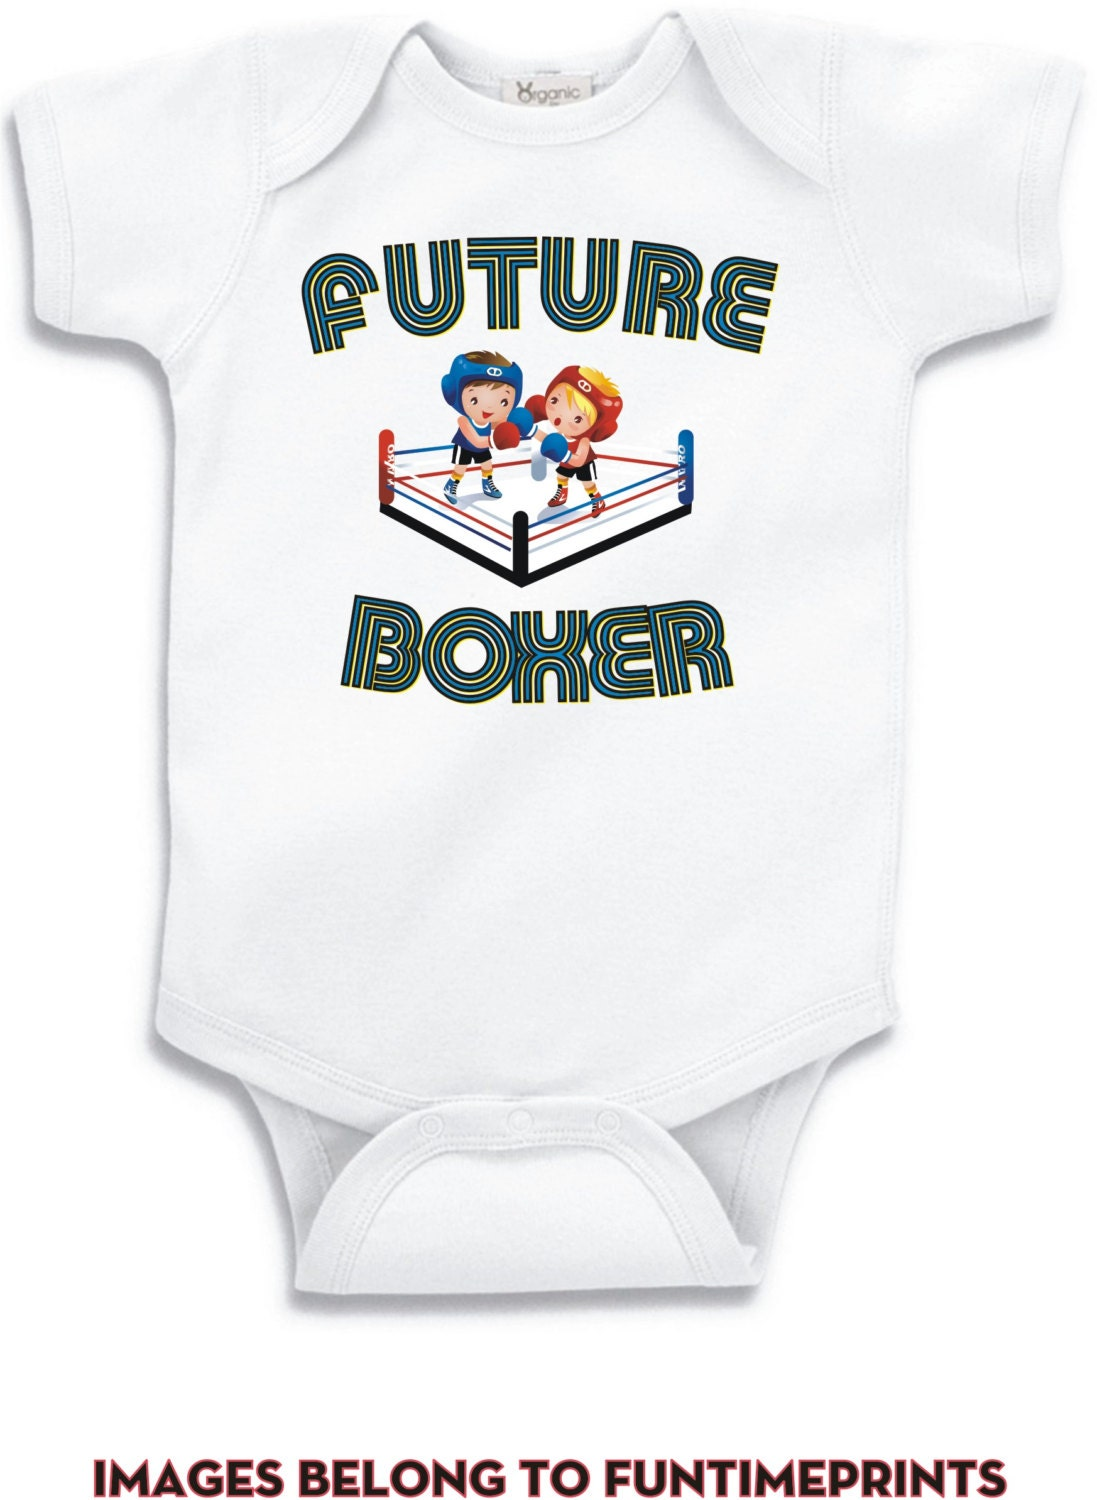 Future Boxer T-shirt Or Bodysuit-infant Toddler Youth Romper Tshirt Funny Fun Boys Girls Kids Baby Clothing Childrens Sports Boxing - 0052 Unisex Tshirt